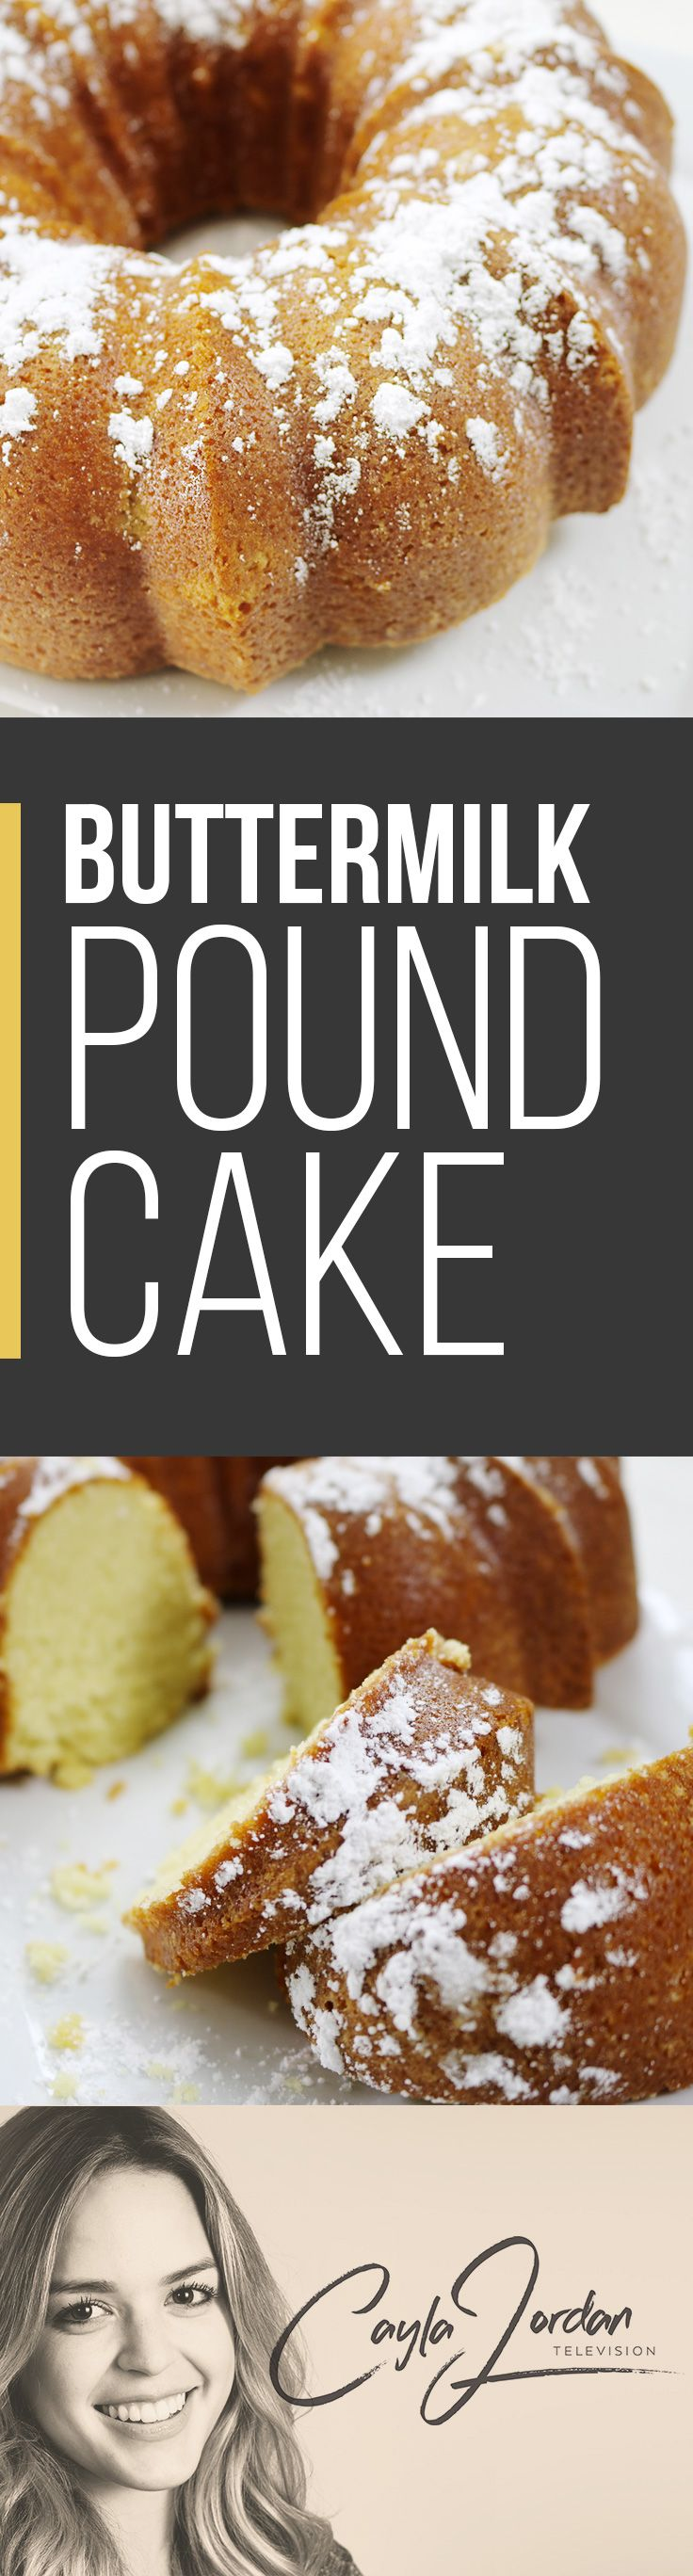 Watch this video tutorial for the BEST melt in your mouth Buttermilk Pound Cake!!!  Go to www.caylajordan.tv for more. Perfect dessert if you don't want to spend a lot of time decorating a cake.